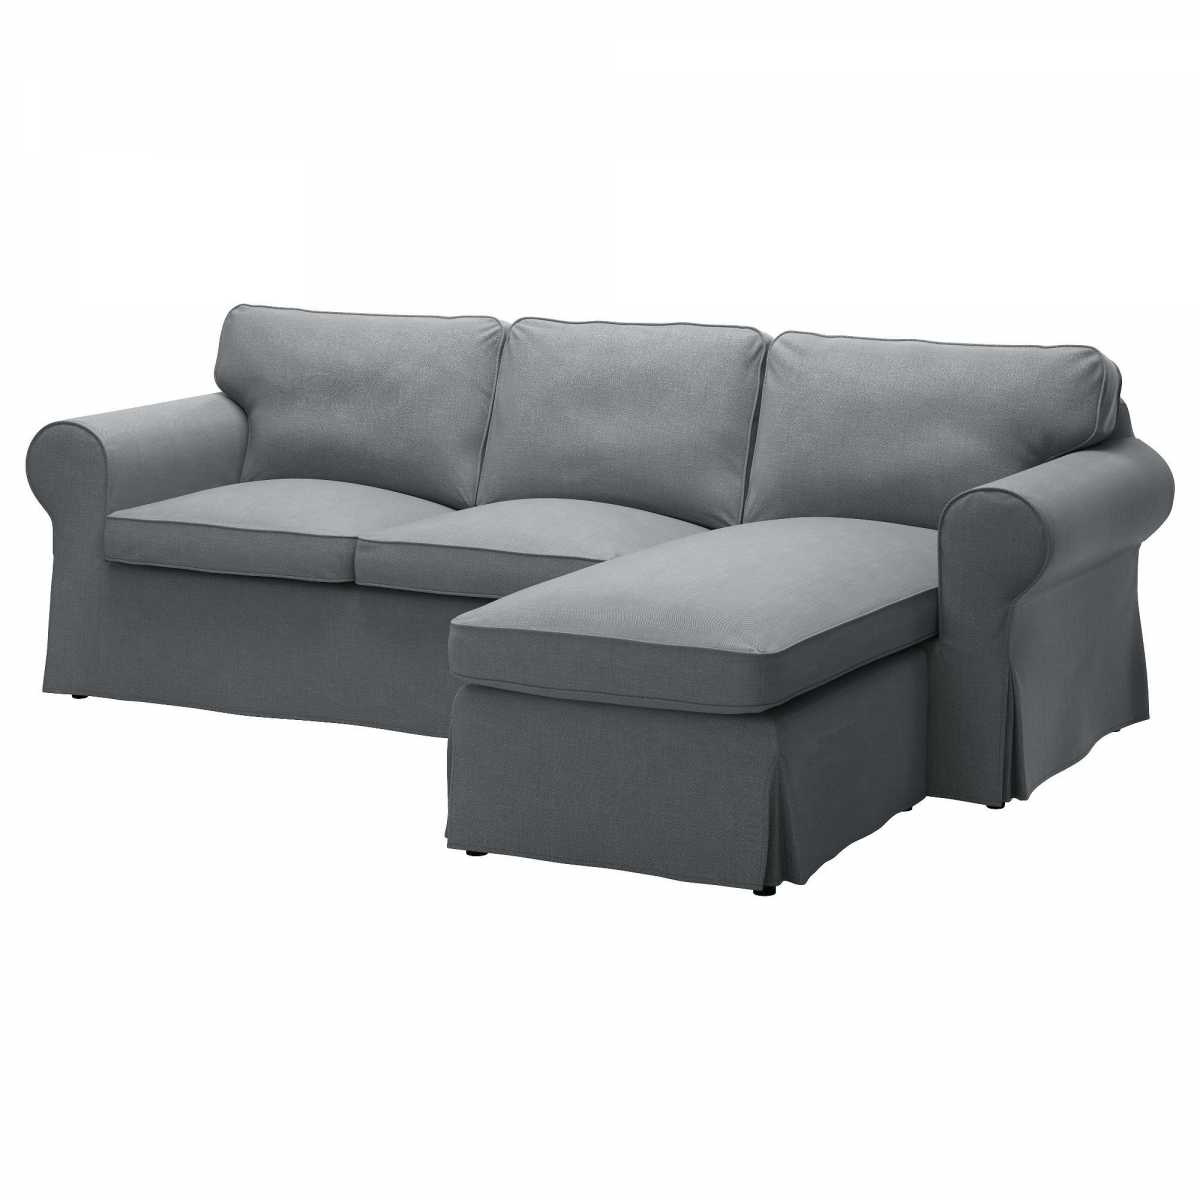 Loveseat : Chaise Loveseat New Small Loveseat With Chaise Lounge Pertaining To Famous Chaise Lounge Sleepers (View 10 of 15)